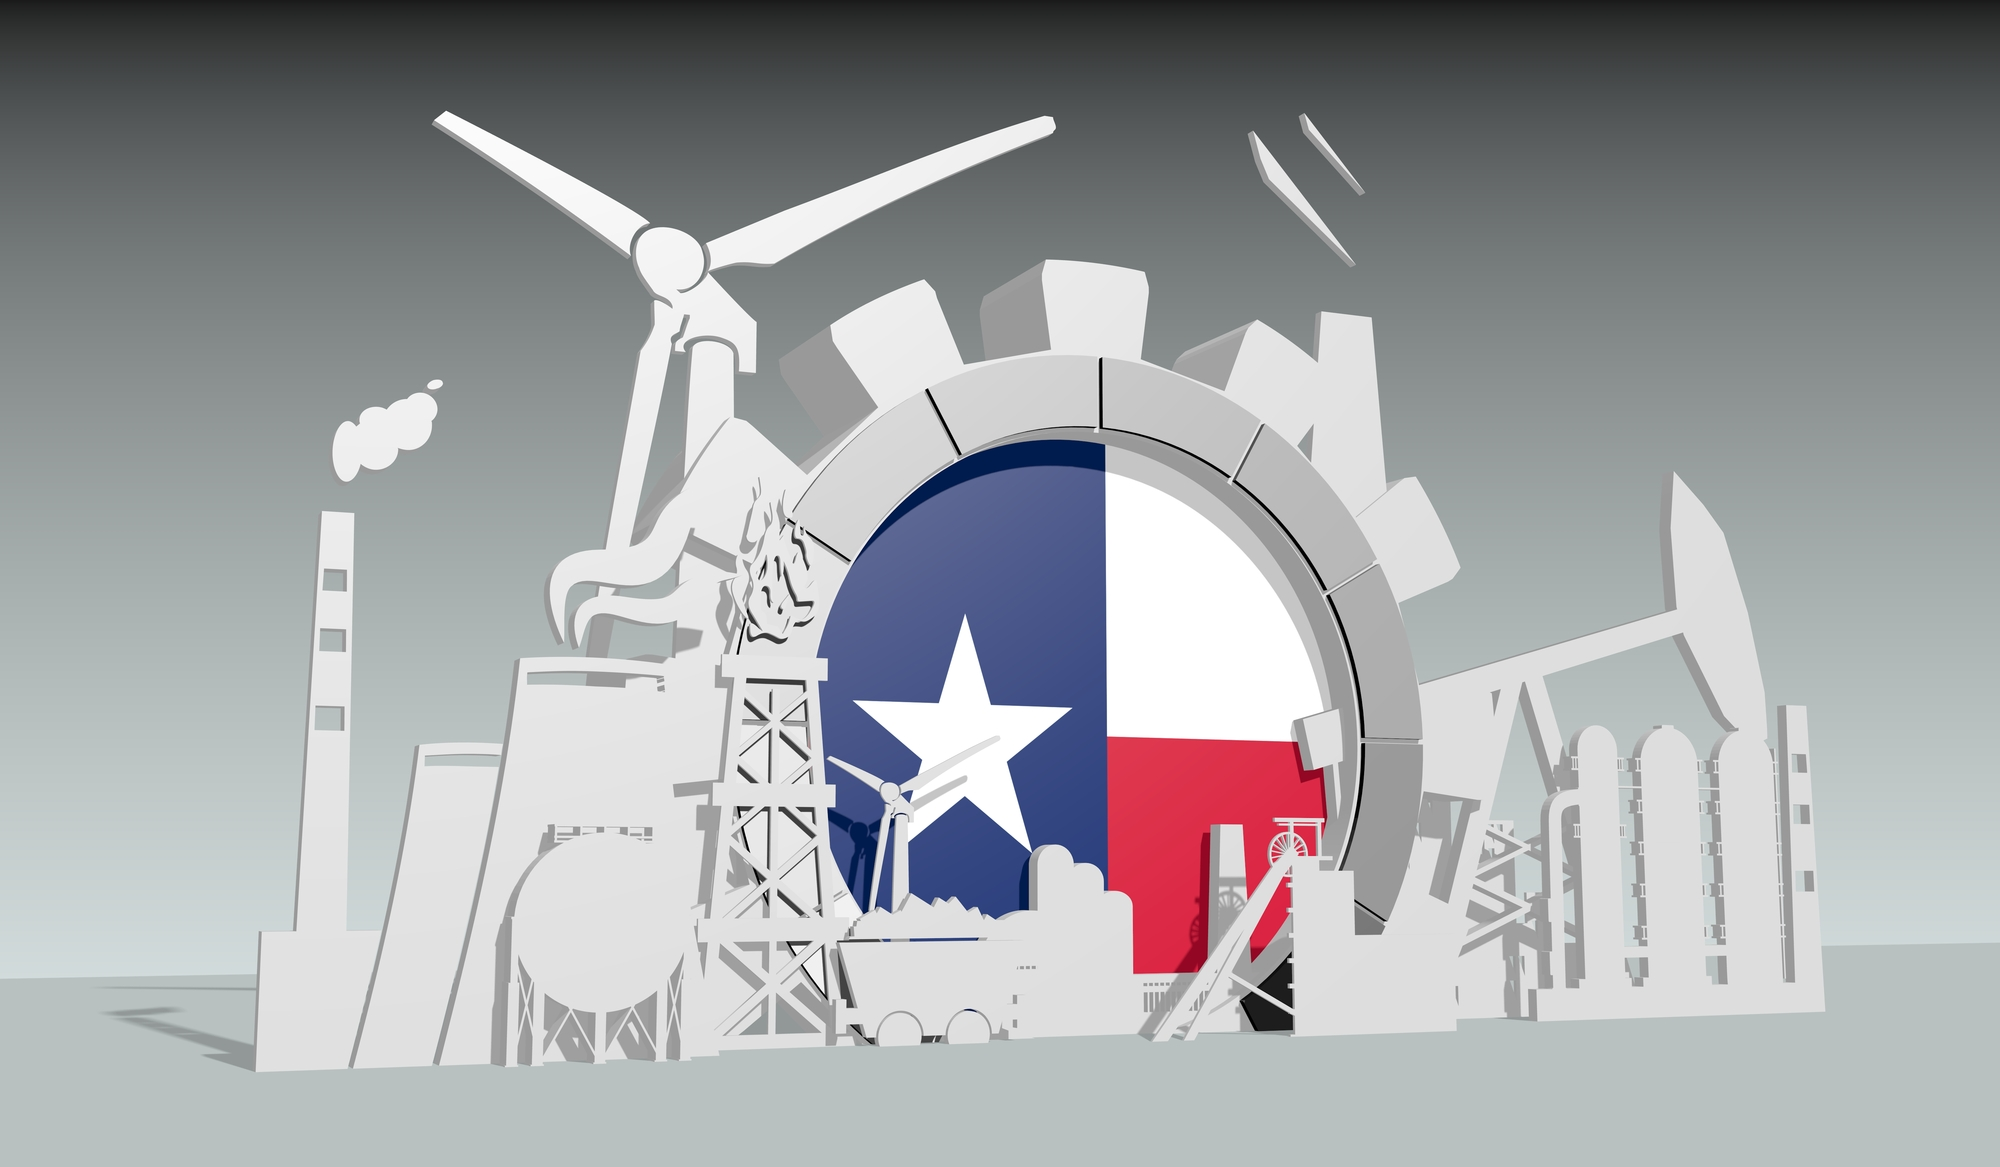 texas power supply image